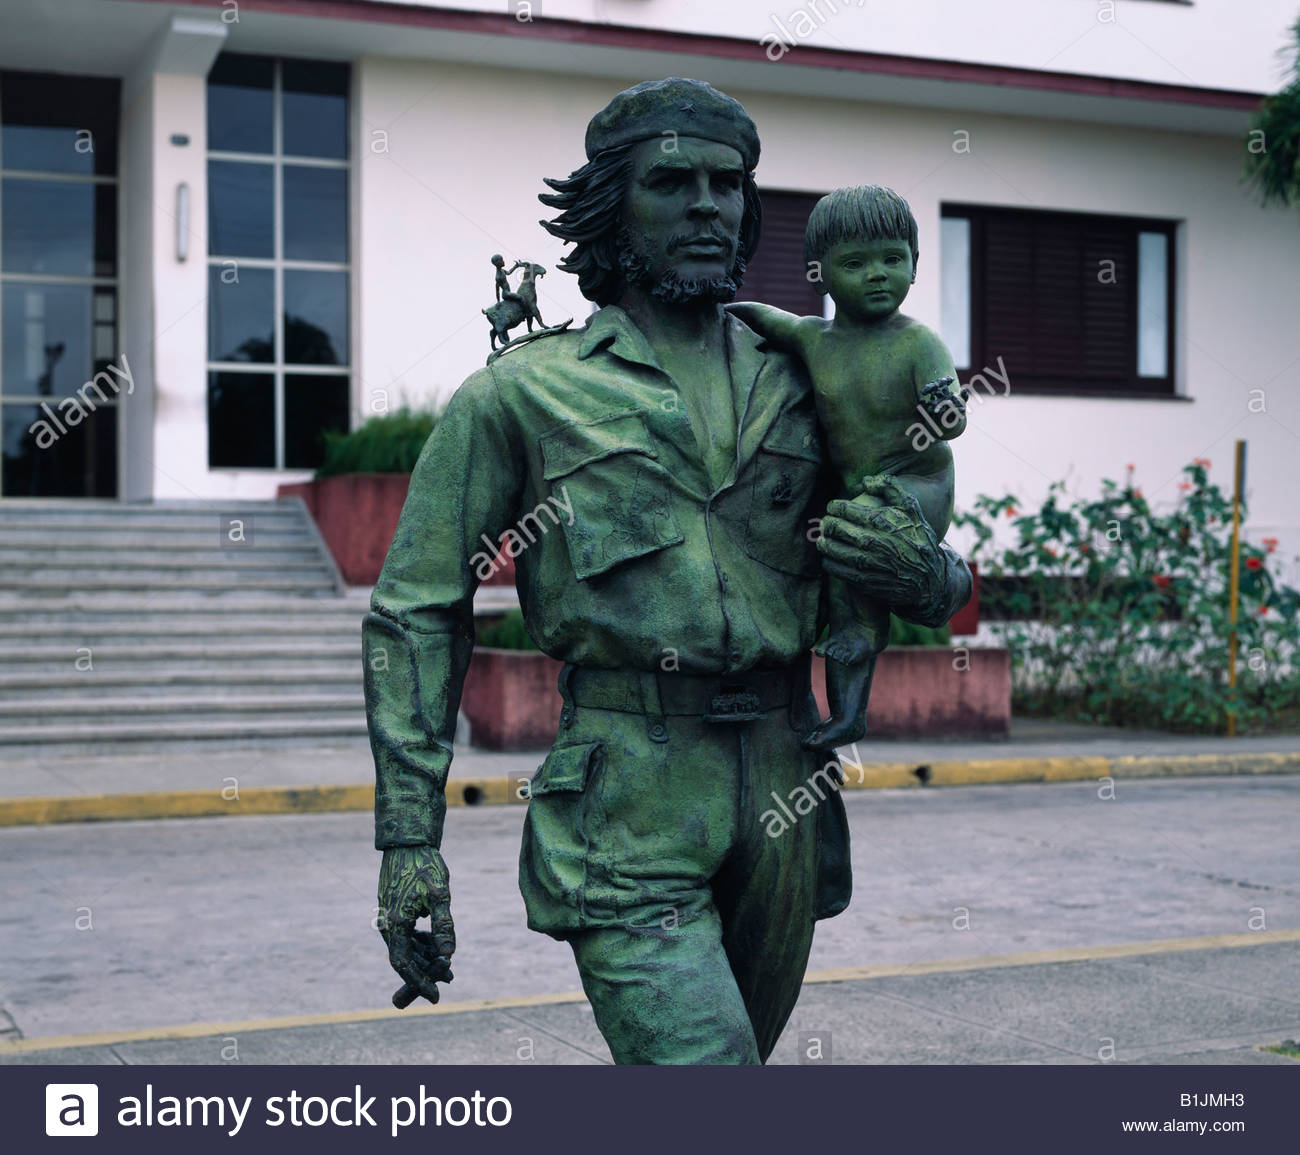 che guevara: hero or villain? essay Che guevara: villain or hero i know most of the basic arguments i just wanted to see regular people would react to the question 2 following.